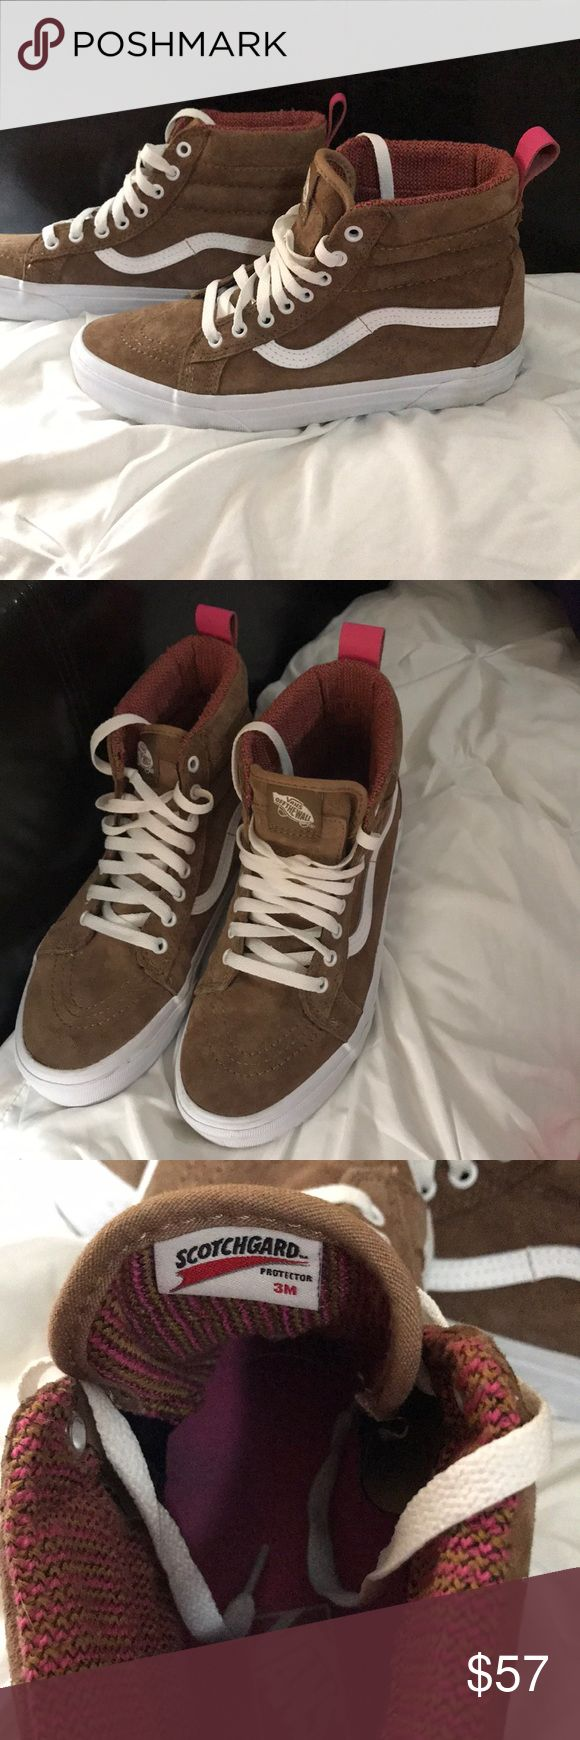 VANS women's brown suede w/ scotchgard Brown suede with pink loops on back. Only worn once. Super warm and has scotchgard protection. Size 9.5 women's and 8 in men's. Vans Shoes Athletic Shoes